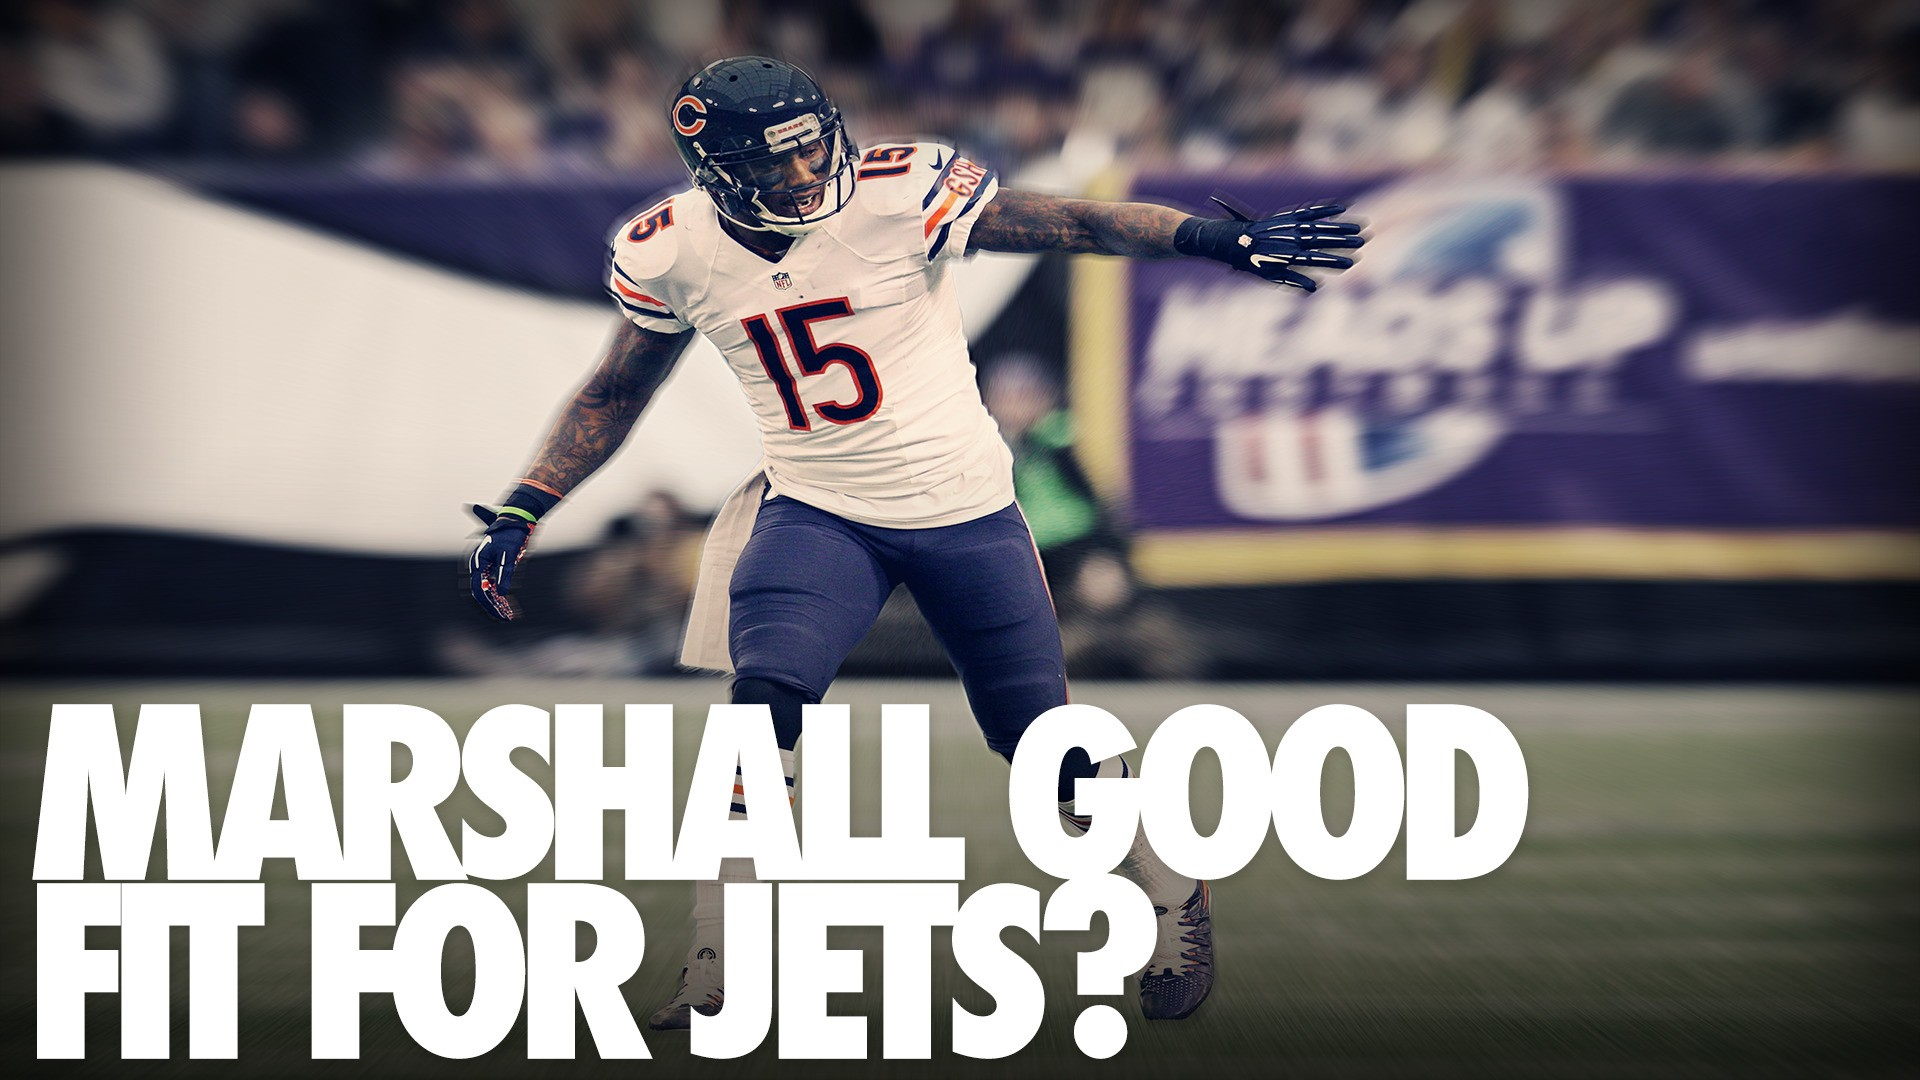 Brandon Marshall to Jets: Latest Trade Details, Comments and Reaction